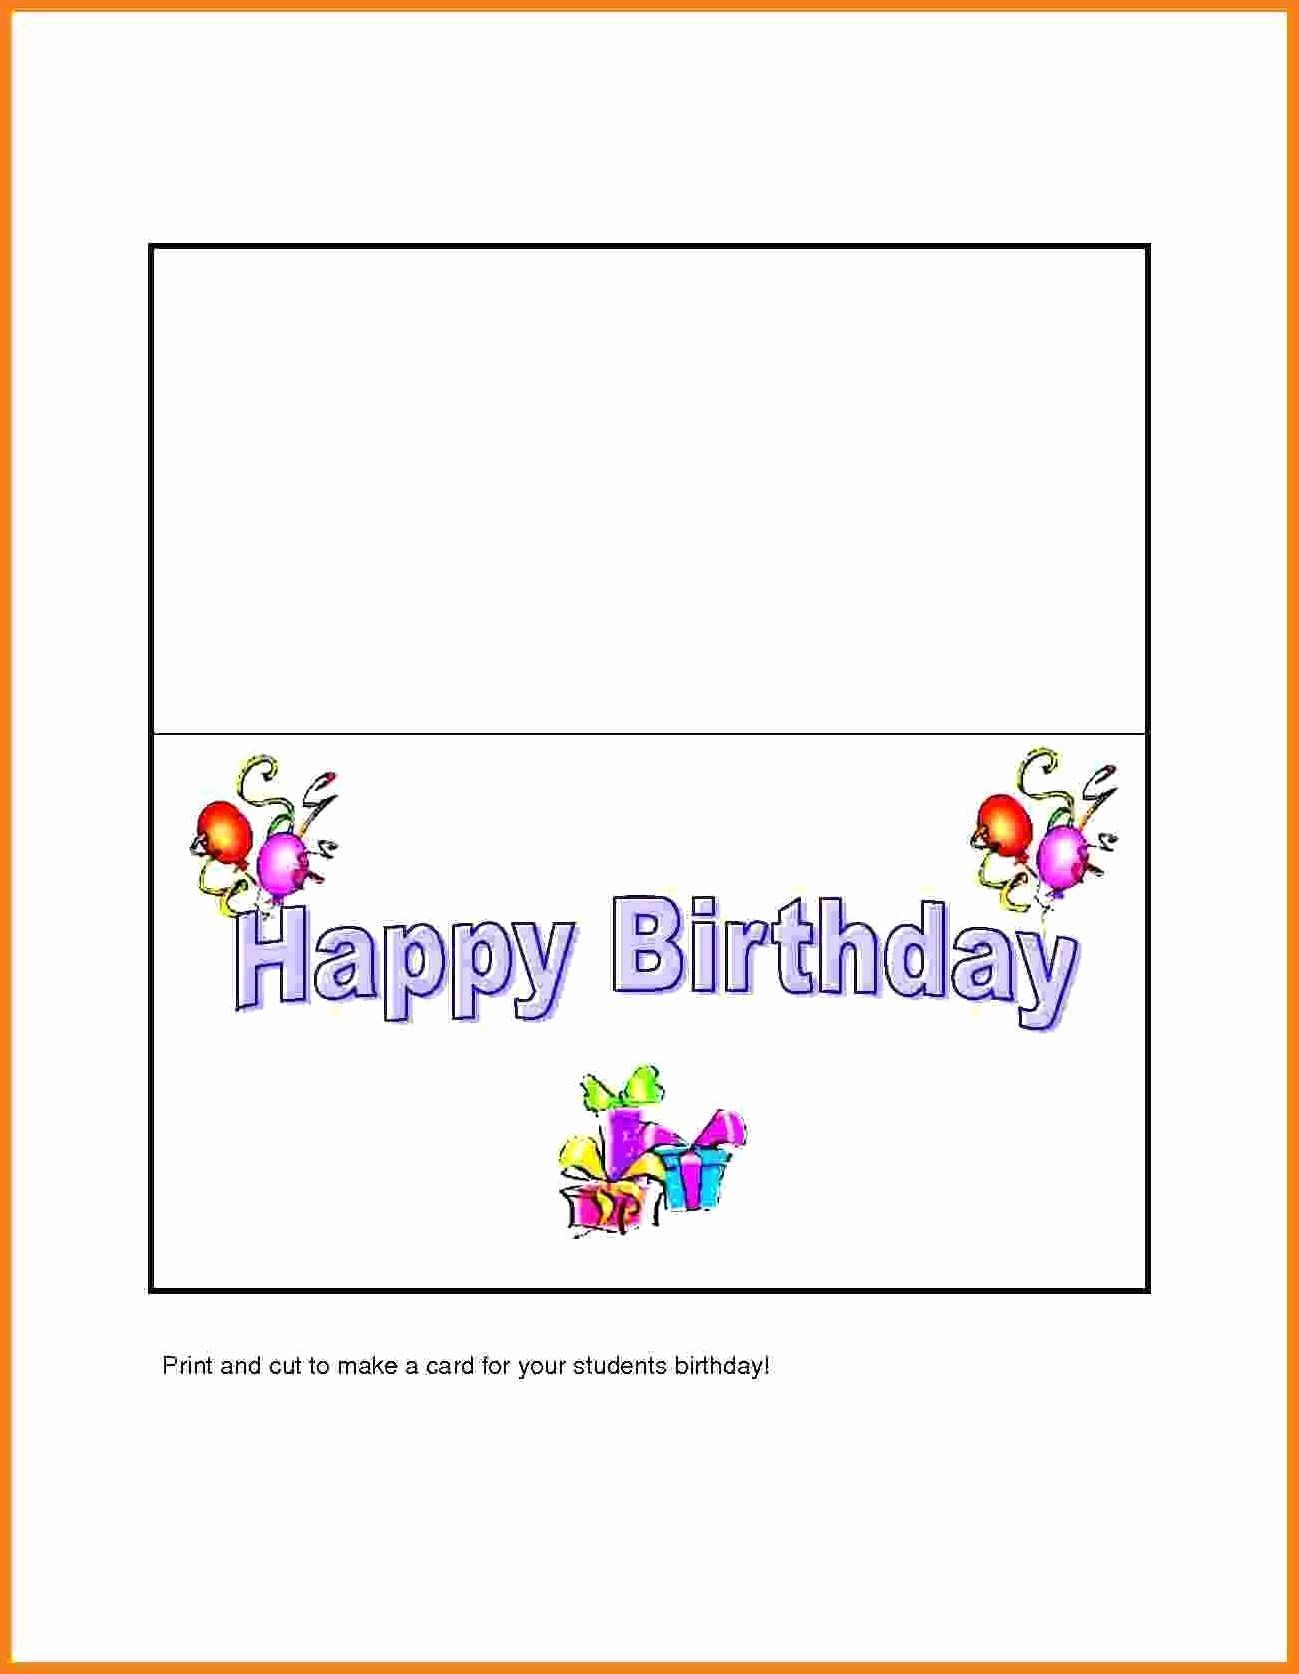 Foldable Birthday Card Template Word : foldable, birthday, template, Template, Beautiful, Microsoft, Birthday, Lovely, Fo…, Template,, Happy, Cards,